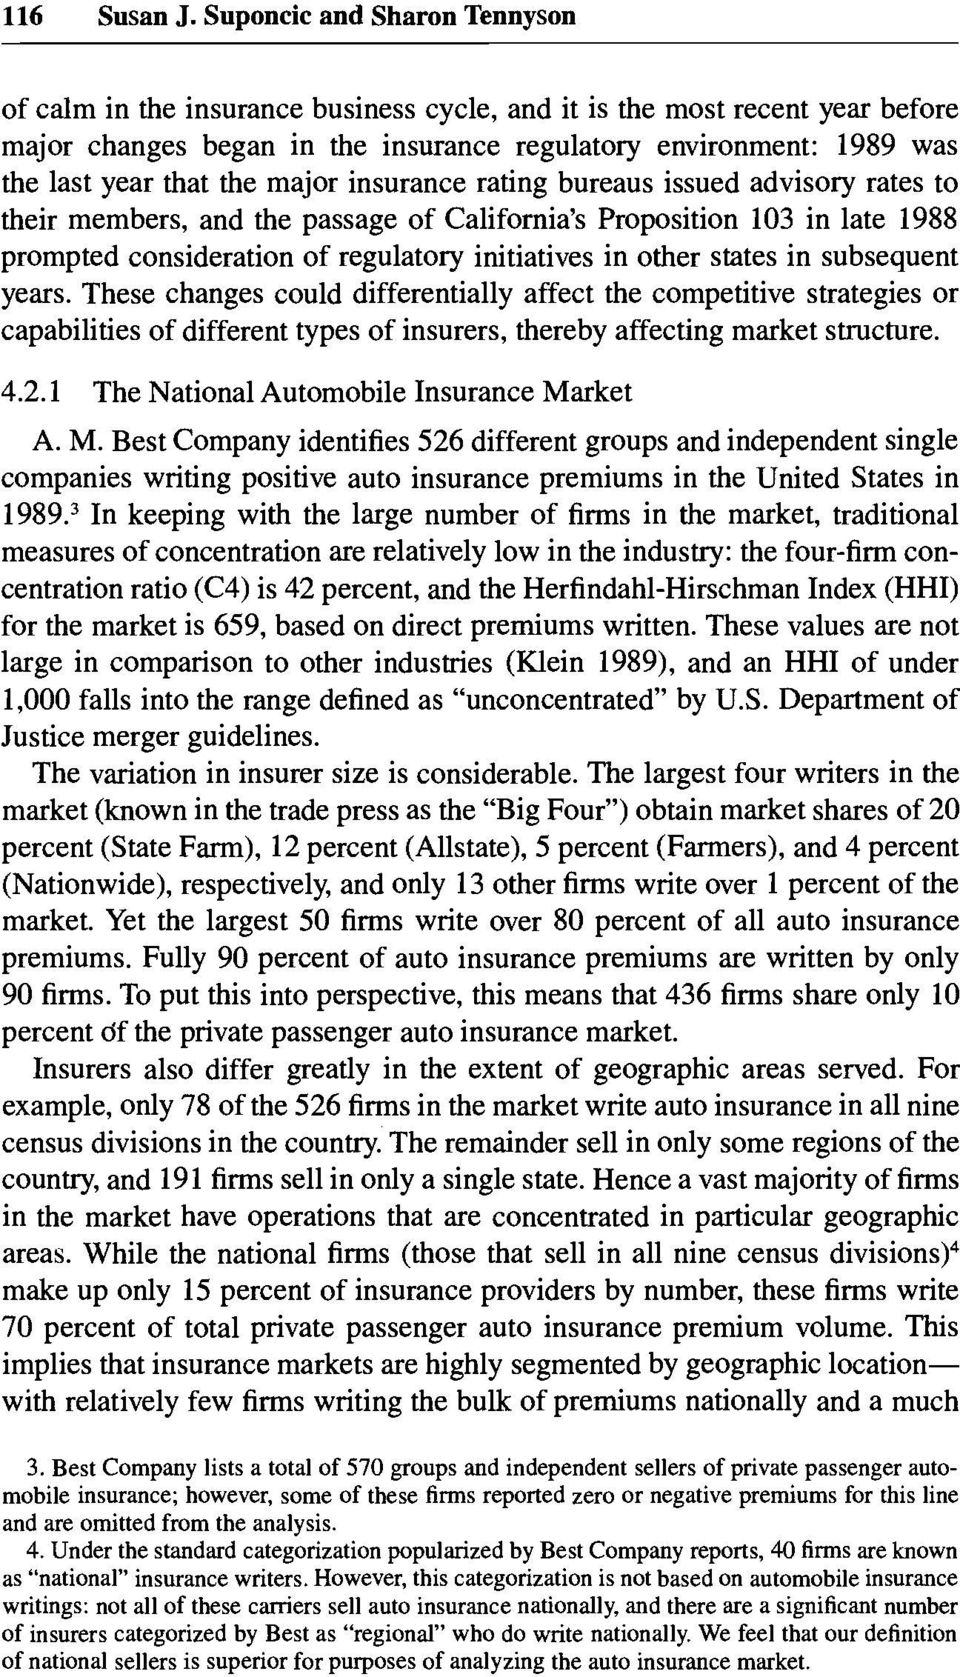 the major insurance rating bureaus issued advisory rates to their members, and the passage of California s Proposition 103 in late 1988 prompted consideration of regulatory initiatives in other